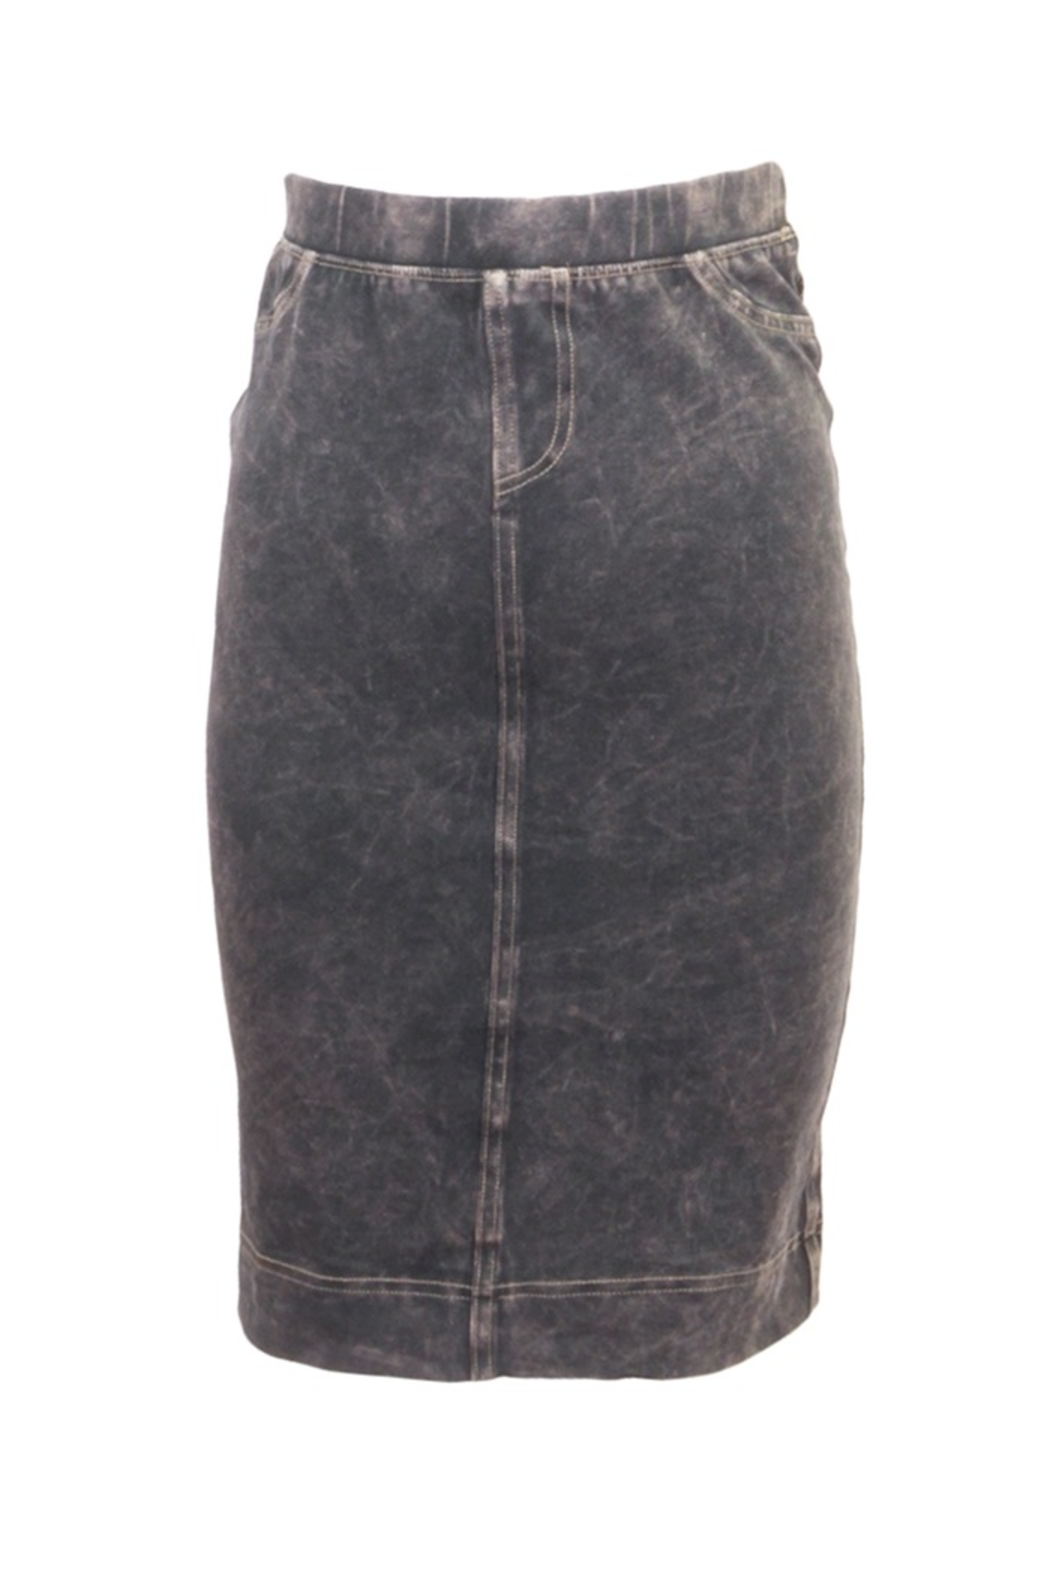 Hard Tail Hardtail Denim Pencil Skirt WJ-124 - Front Cropped Image